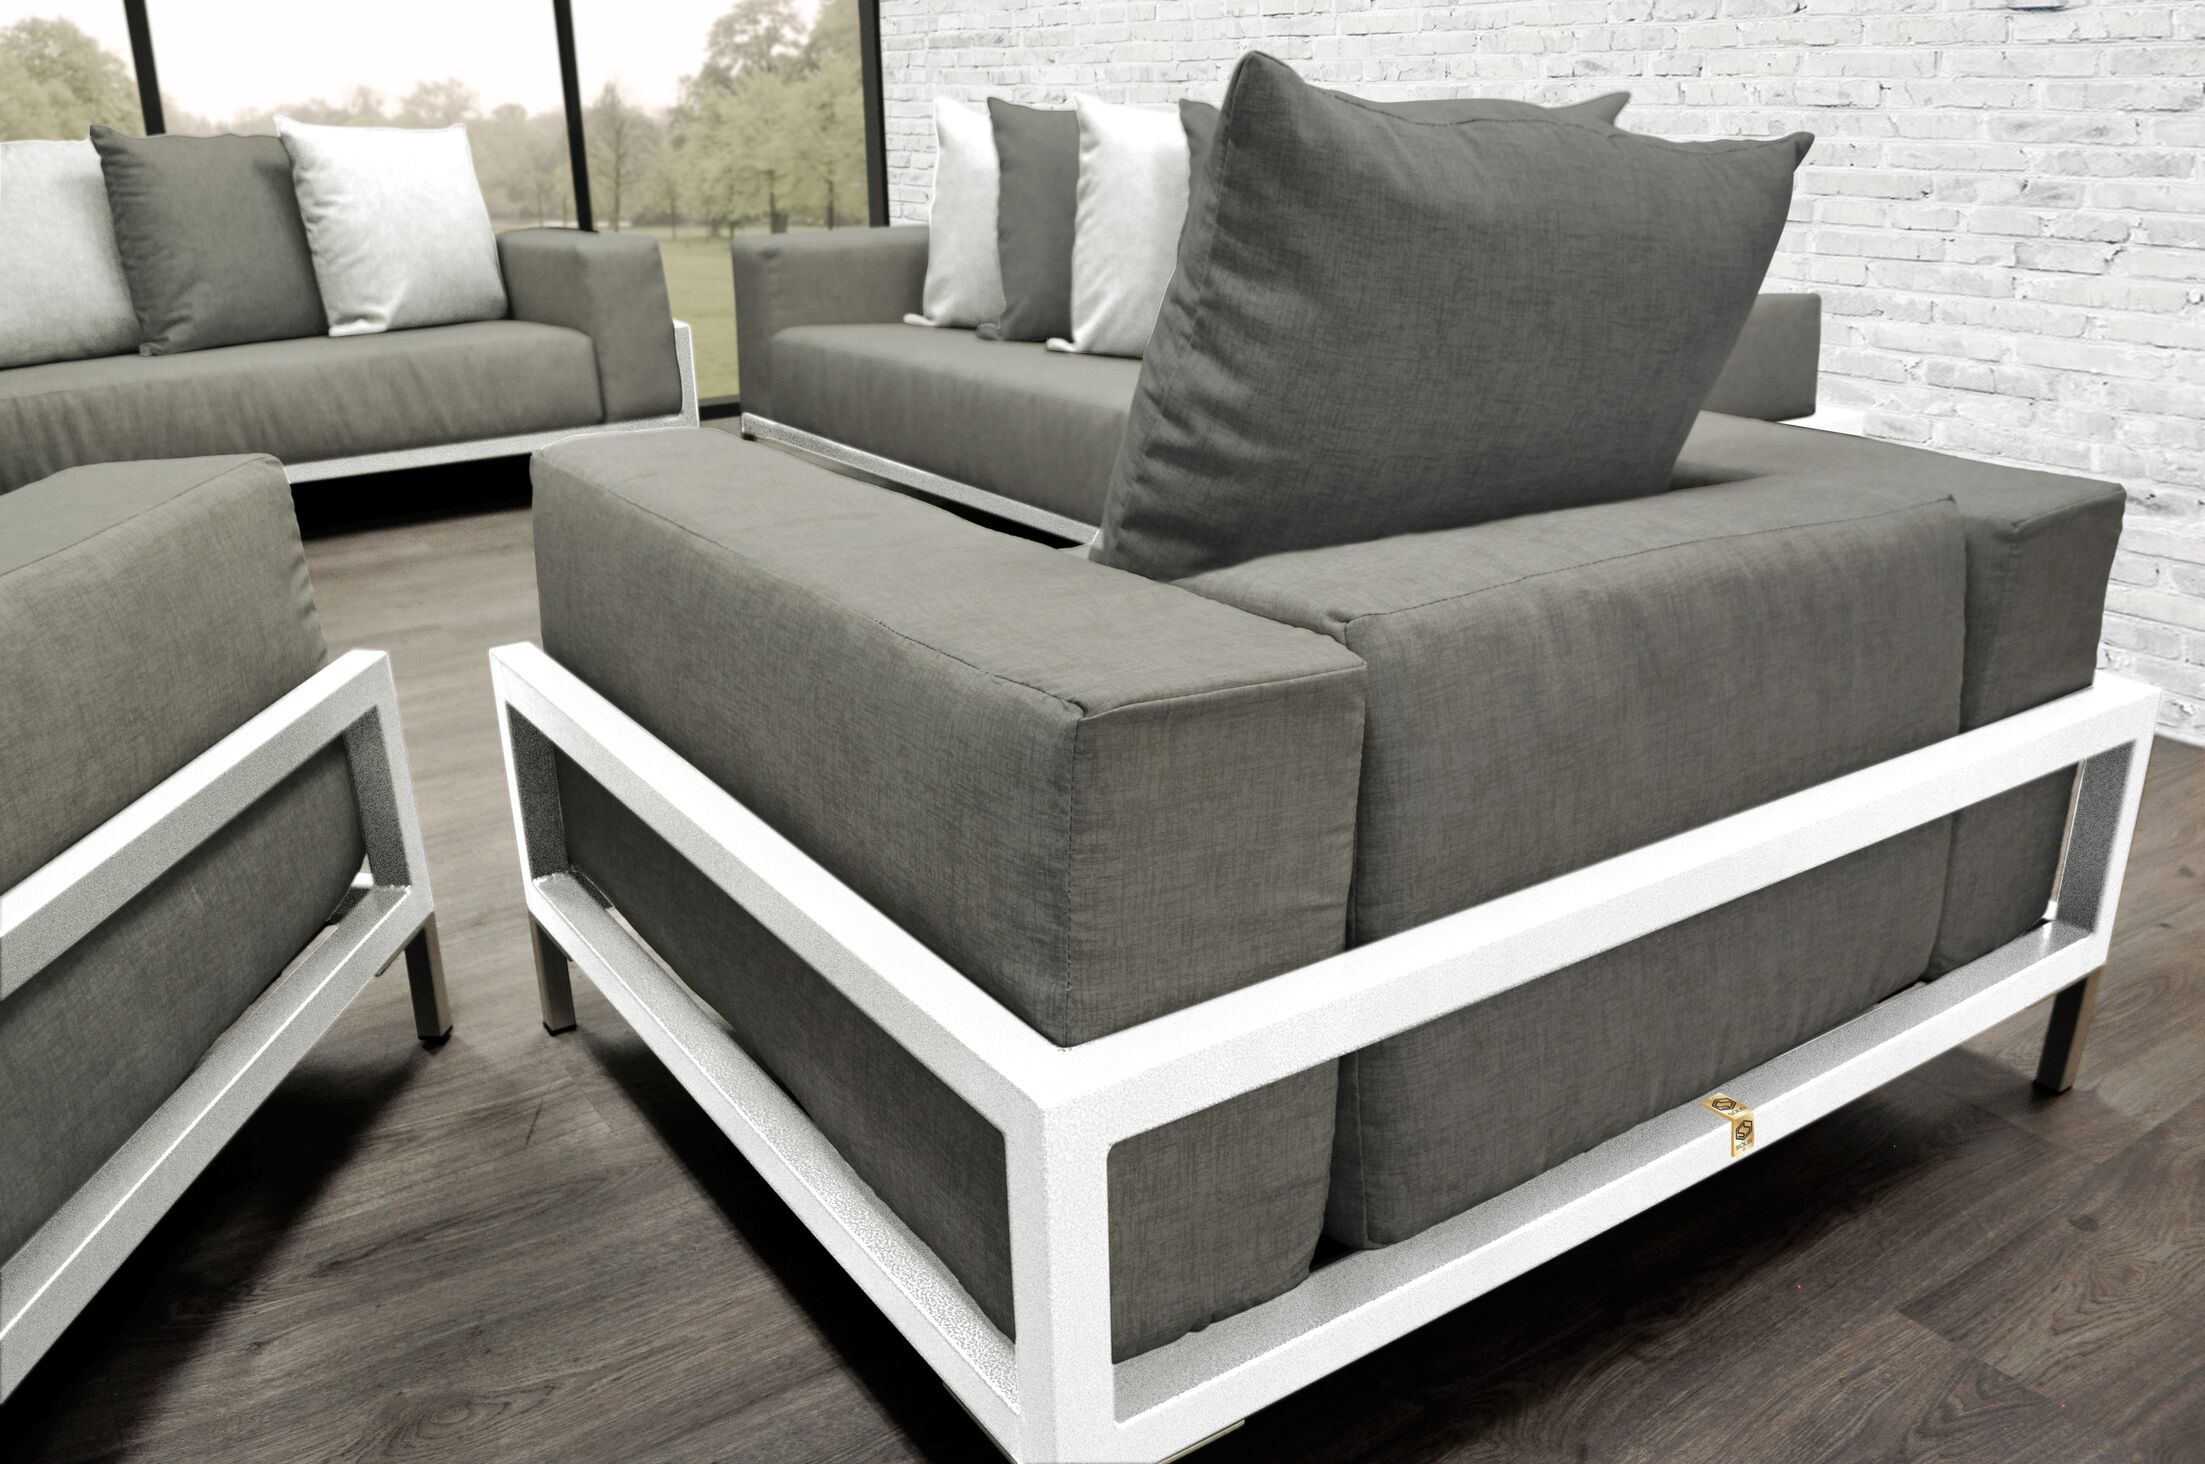 Tilly Patio 4 Piece Sofa Set With Cushions Accent Pillow Fabric: Dark Oyster/White, Fabric: Oyster